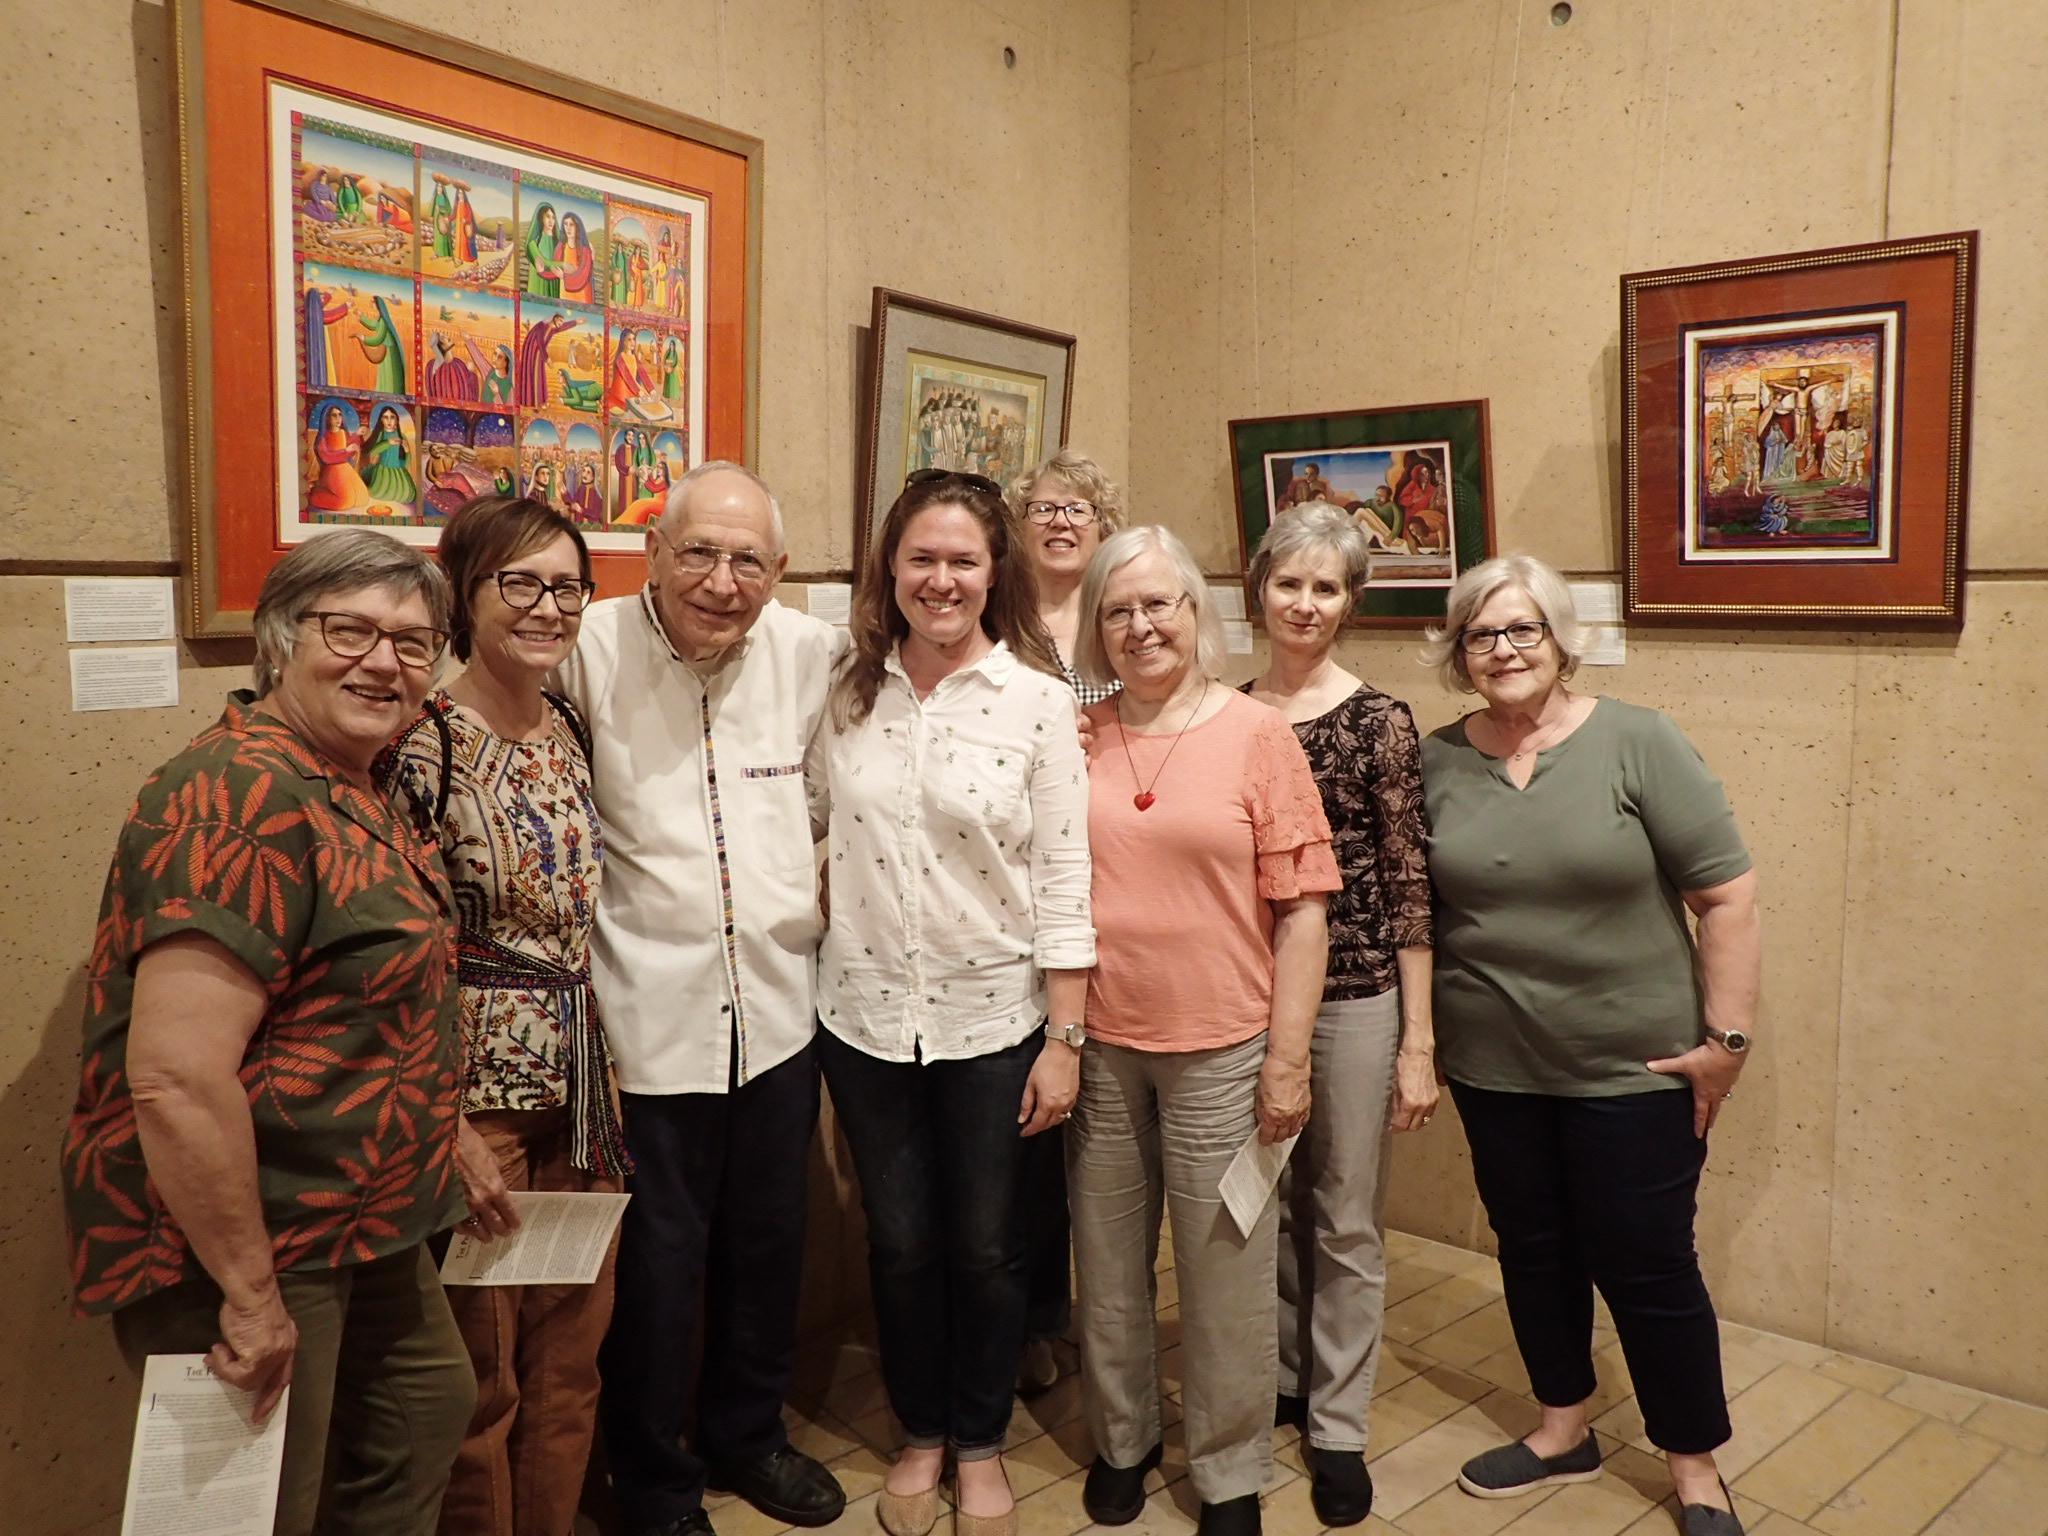 Our group with John August Swanson